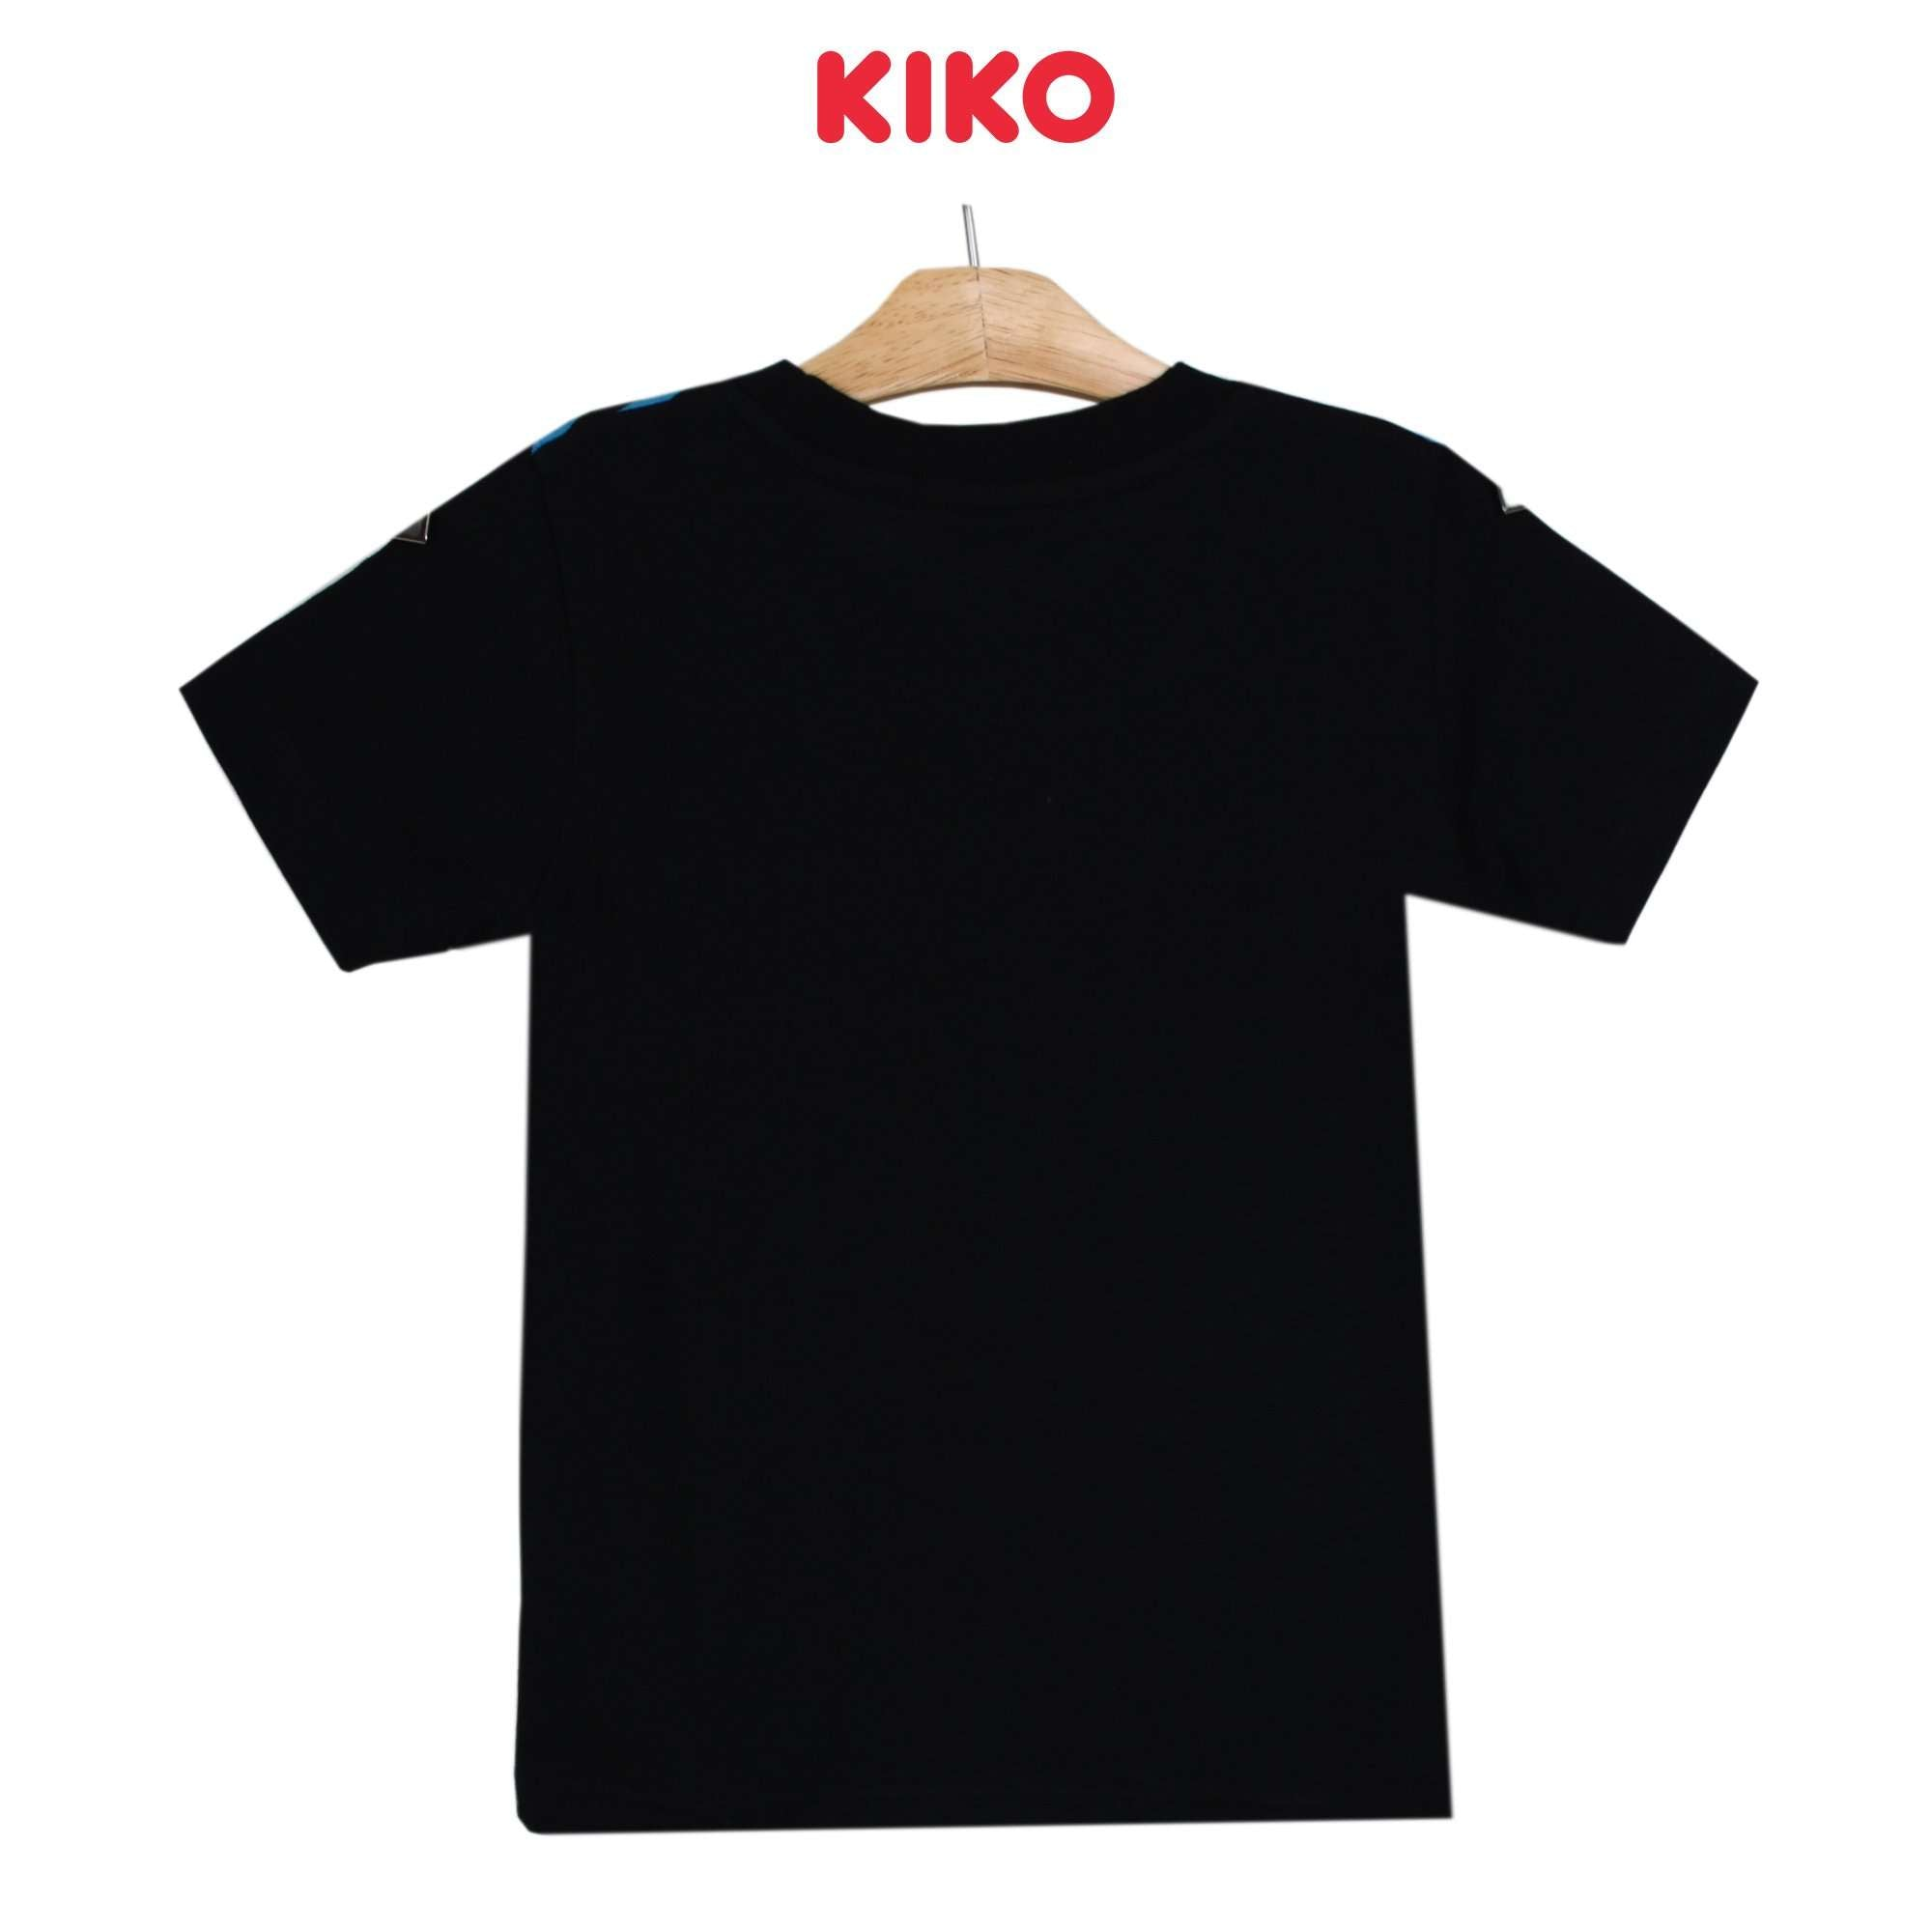 KIKO Boy Short Sleeve Tee - Black 130100-112 : Buy KIKO online at CMG.MY